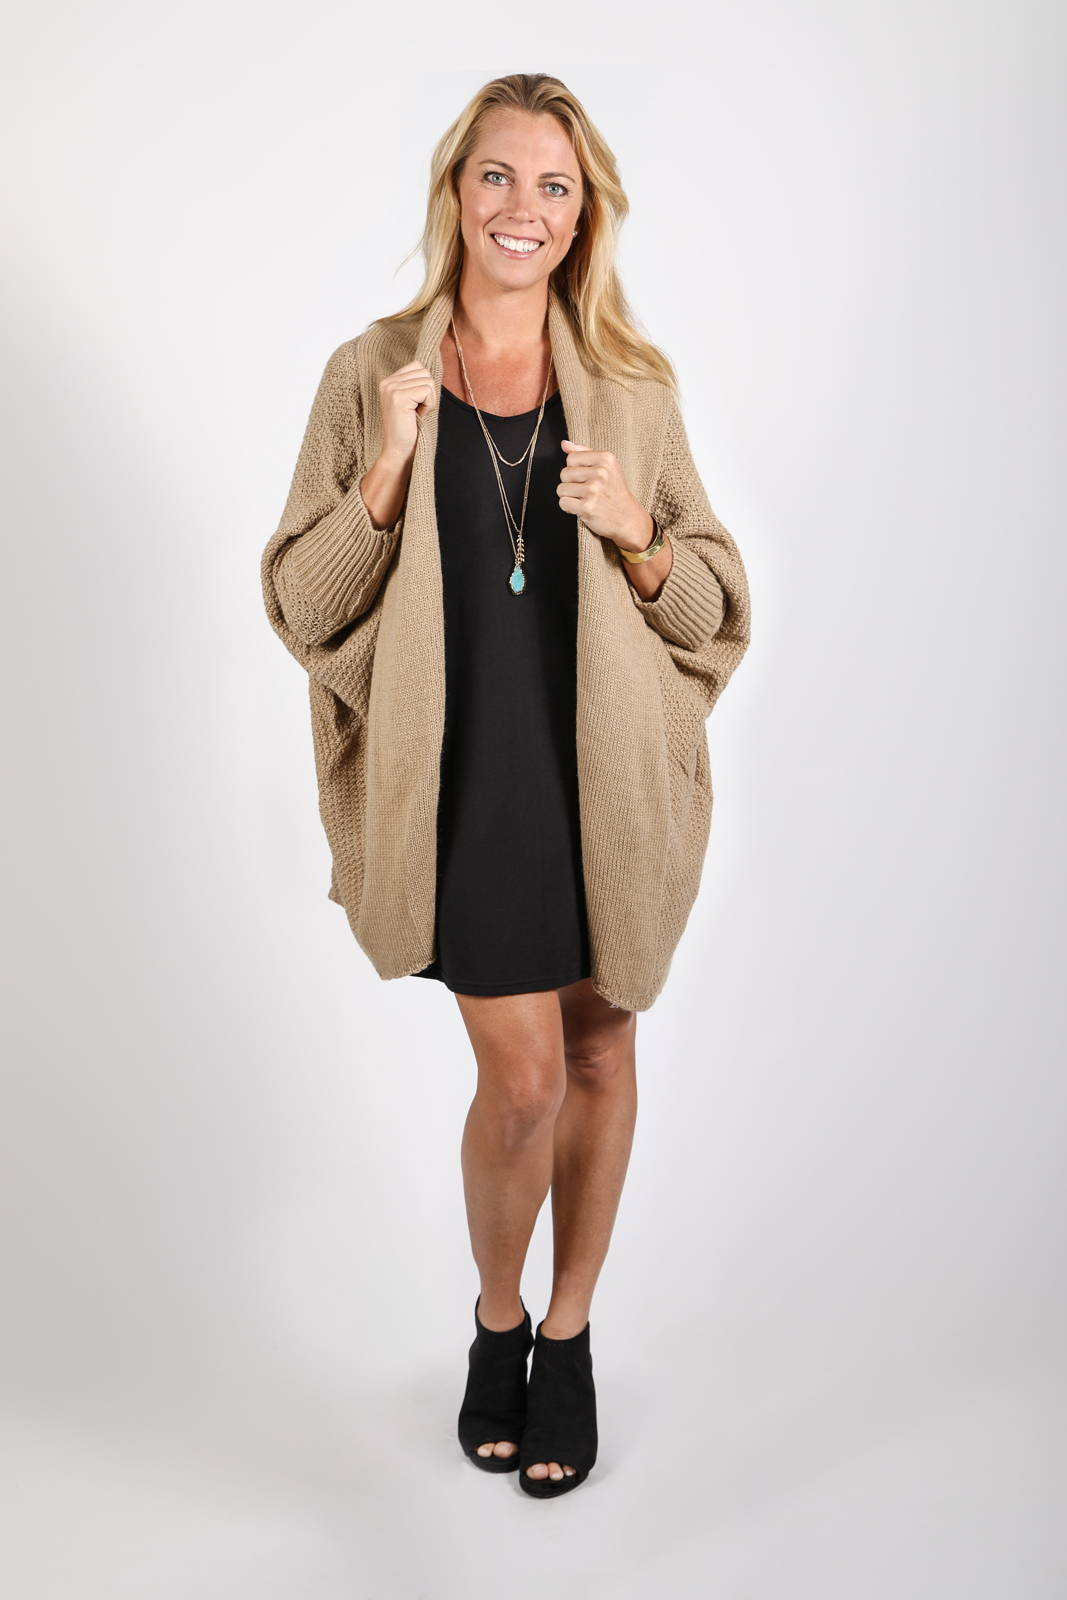 The chunky-knit Zeville Coccoon Cardigan in Camel with the Ina Dress in black, by illuminative